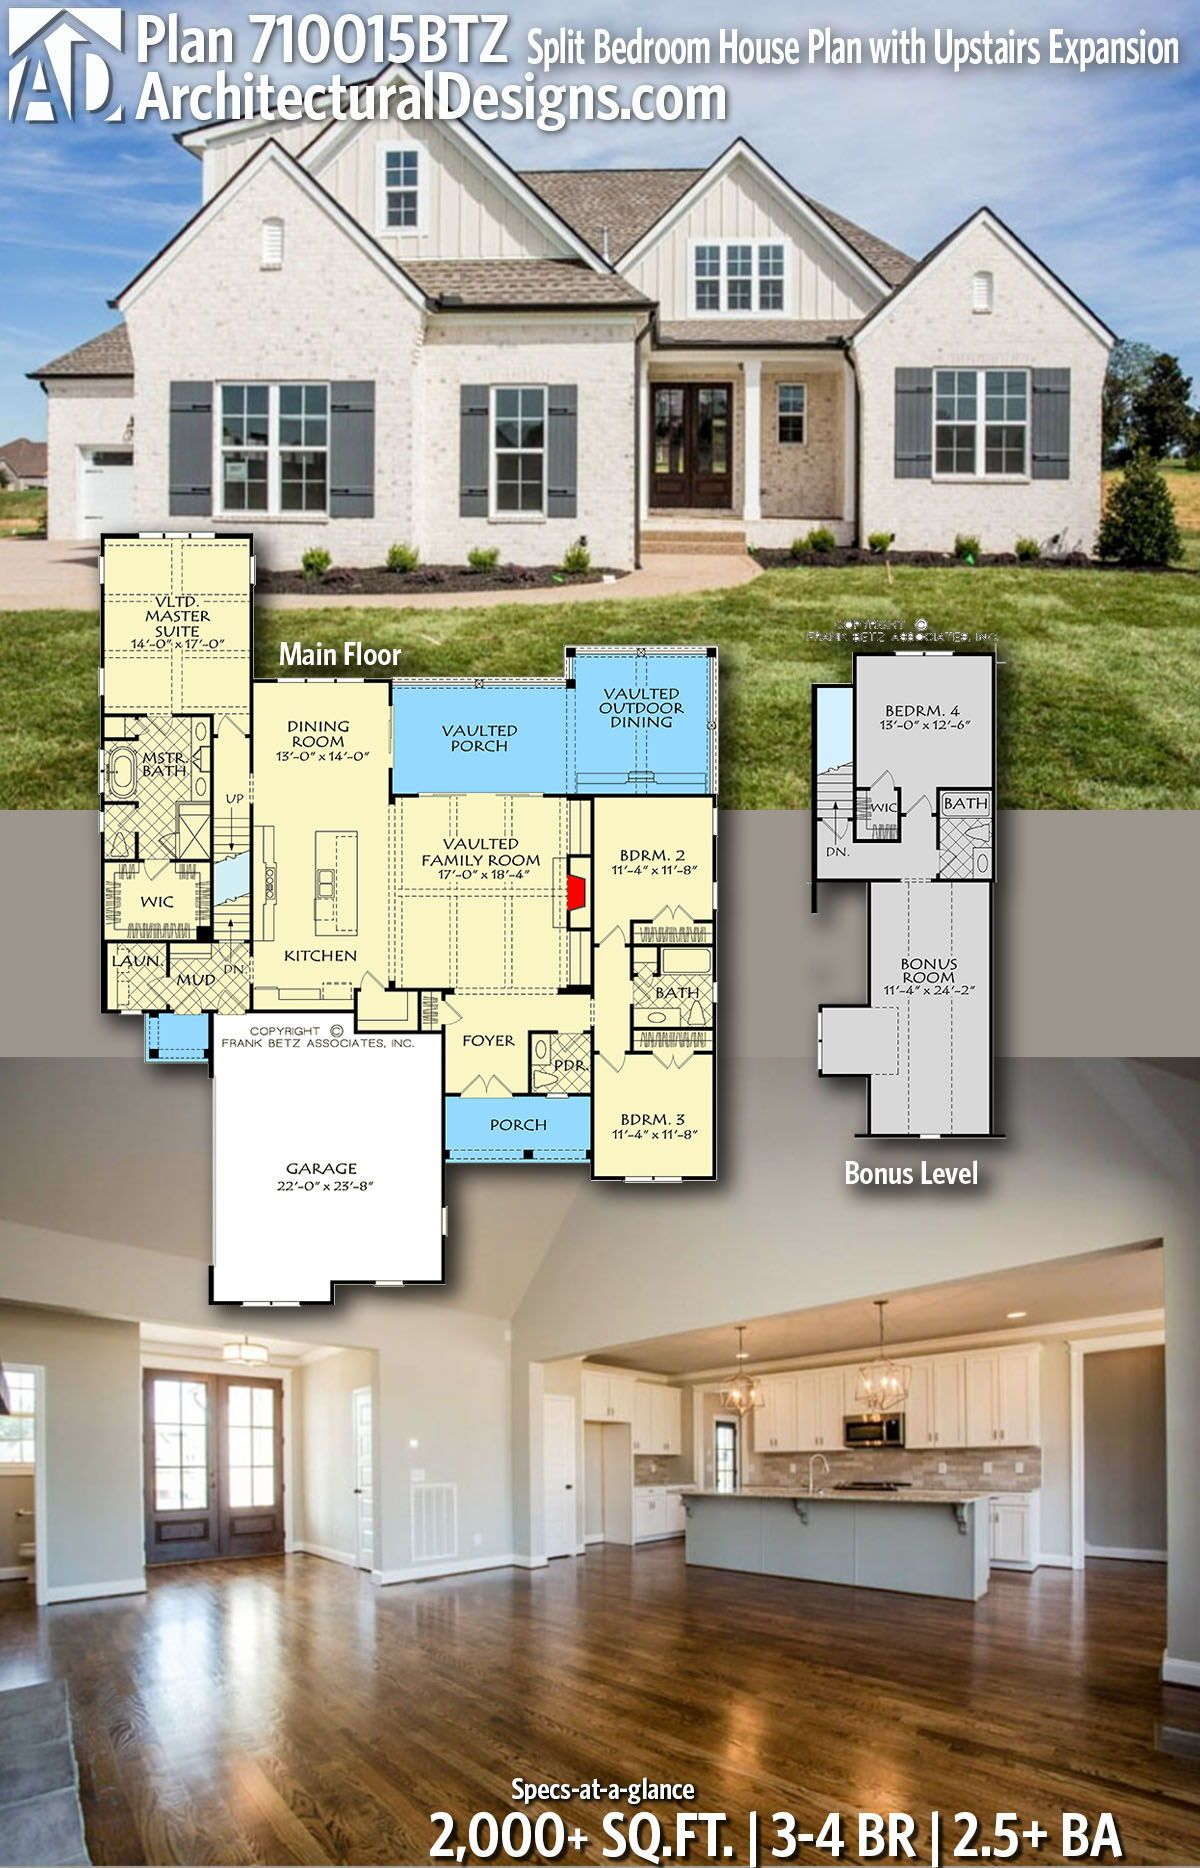 Plan 710015btz Split Bedroom House Plan With Upstairs Expansion House Plans Farmhouse Dream House Plans New House Plans